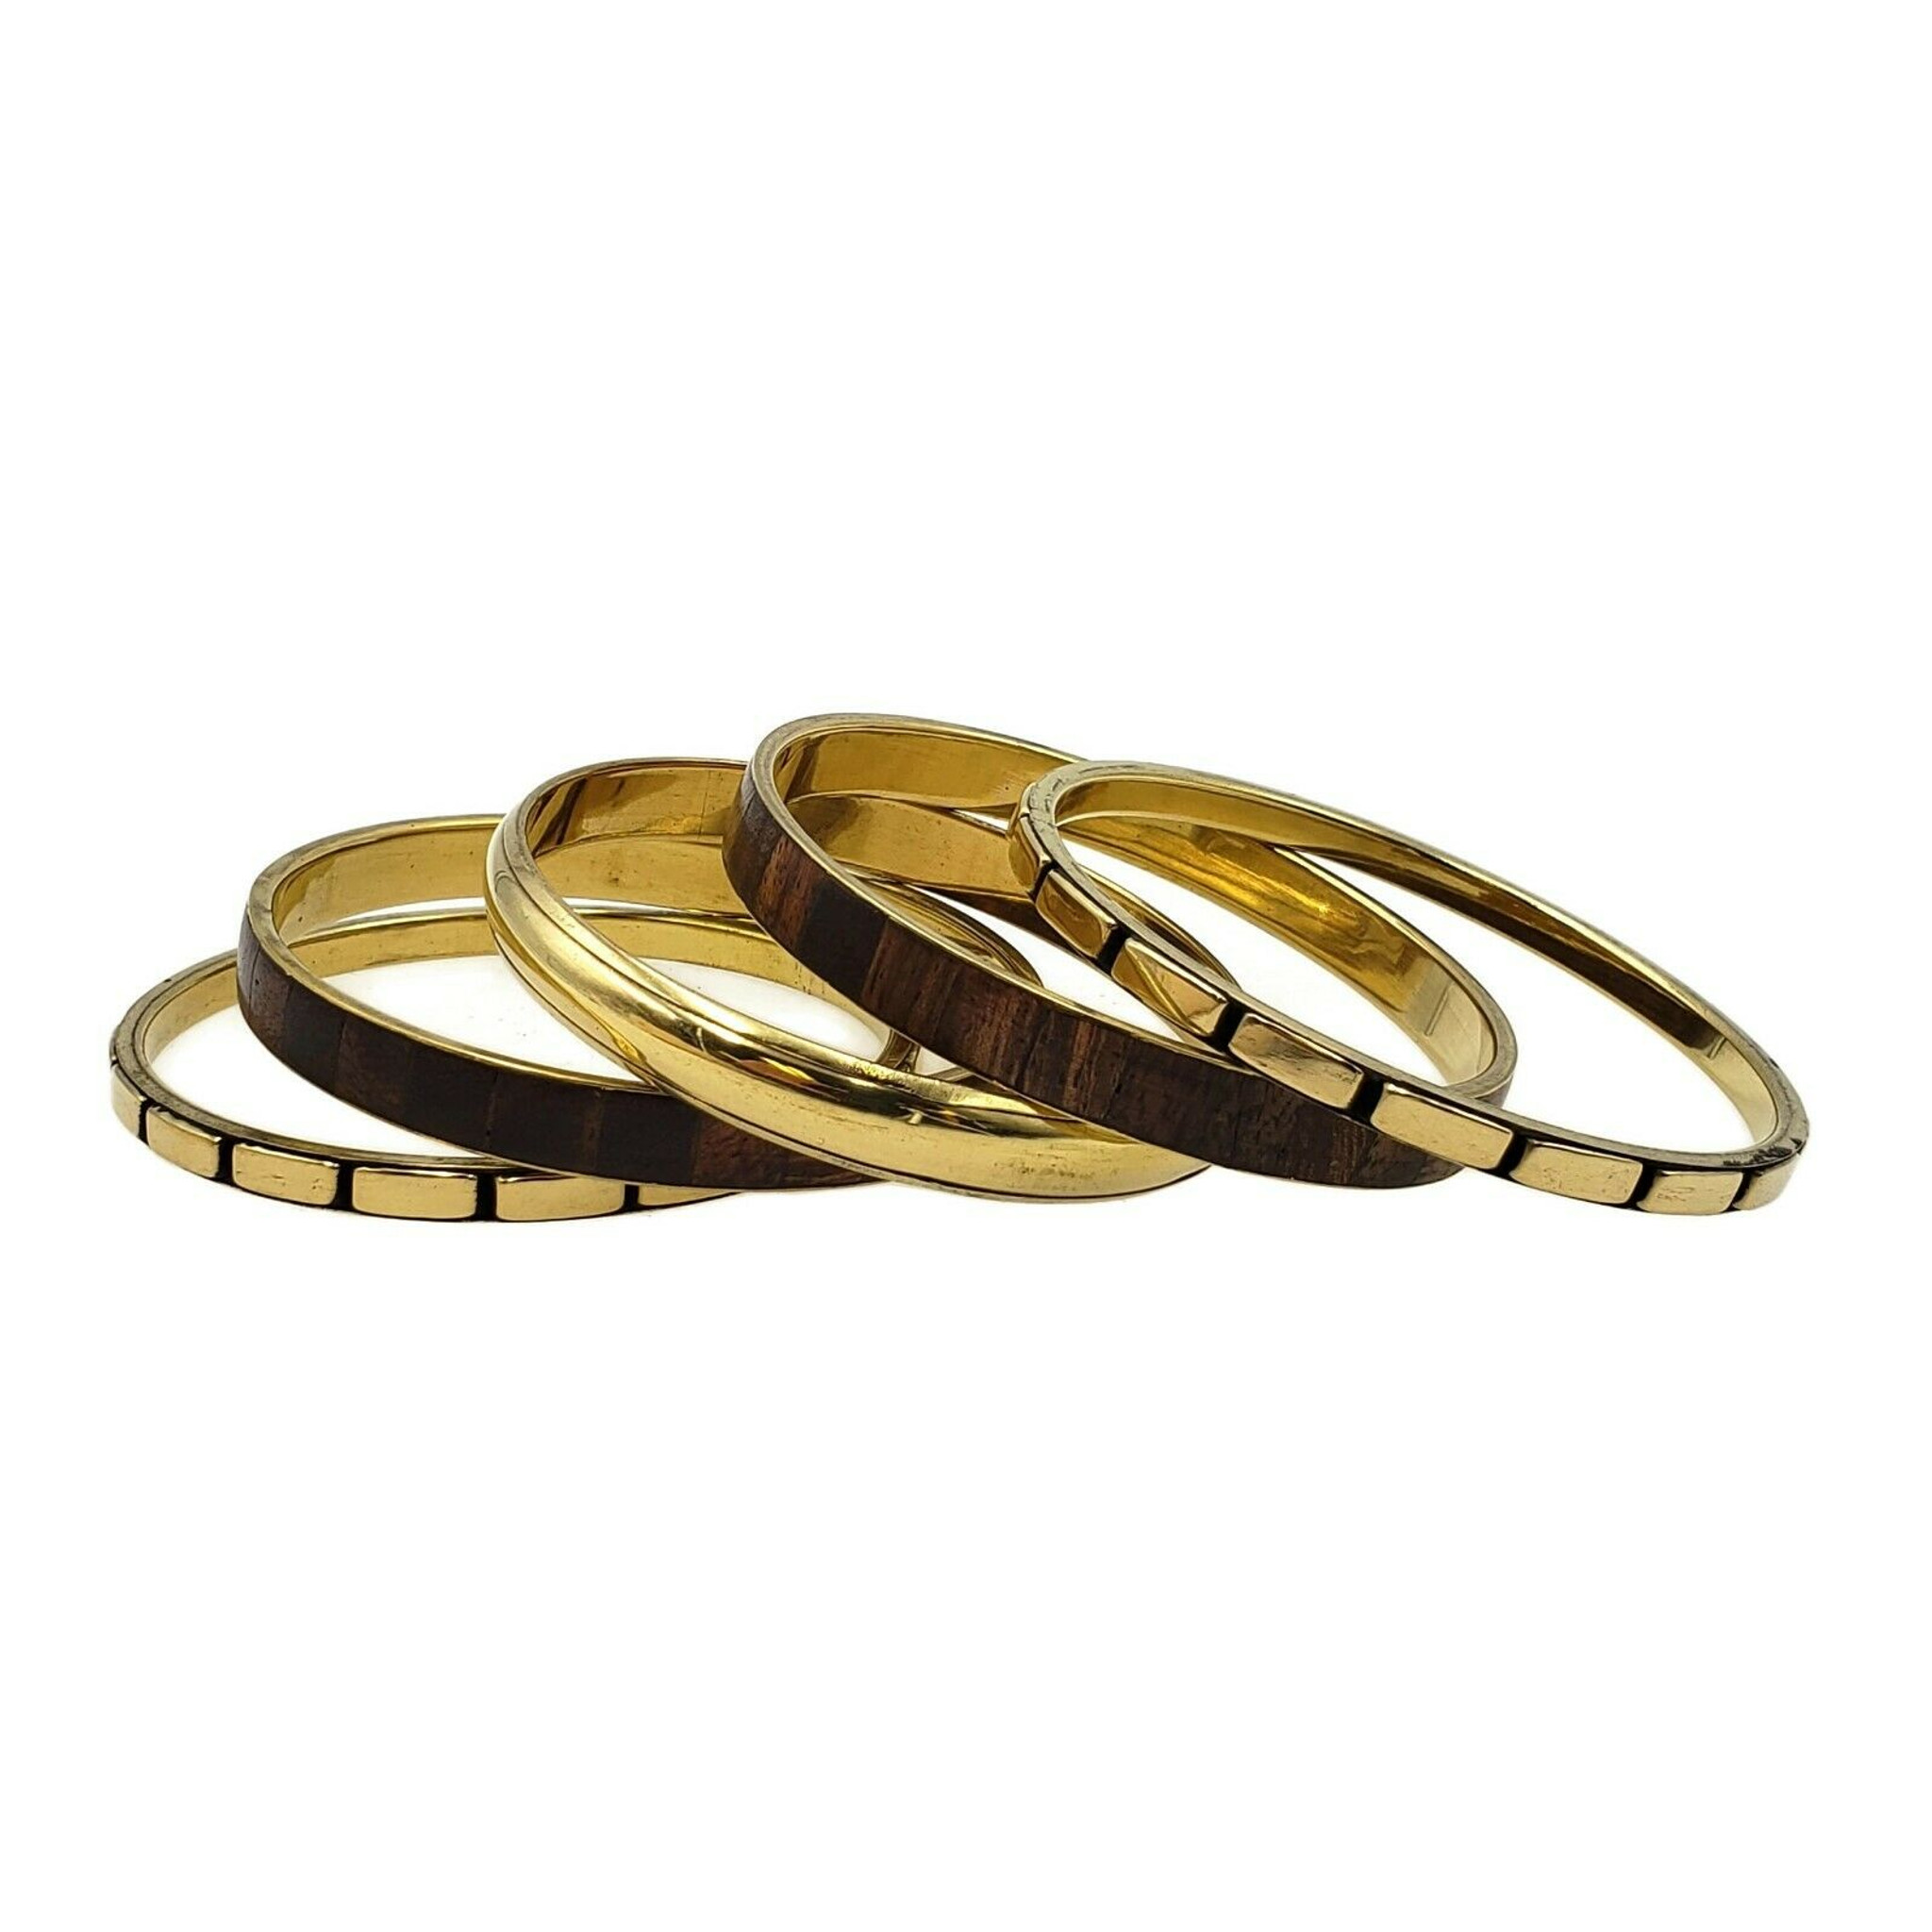 Classic Brass and Wood Bangle bracelet Set